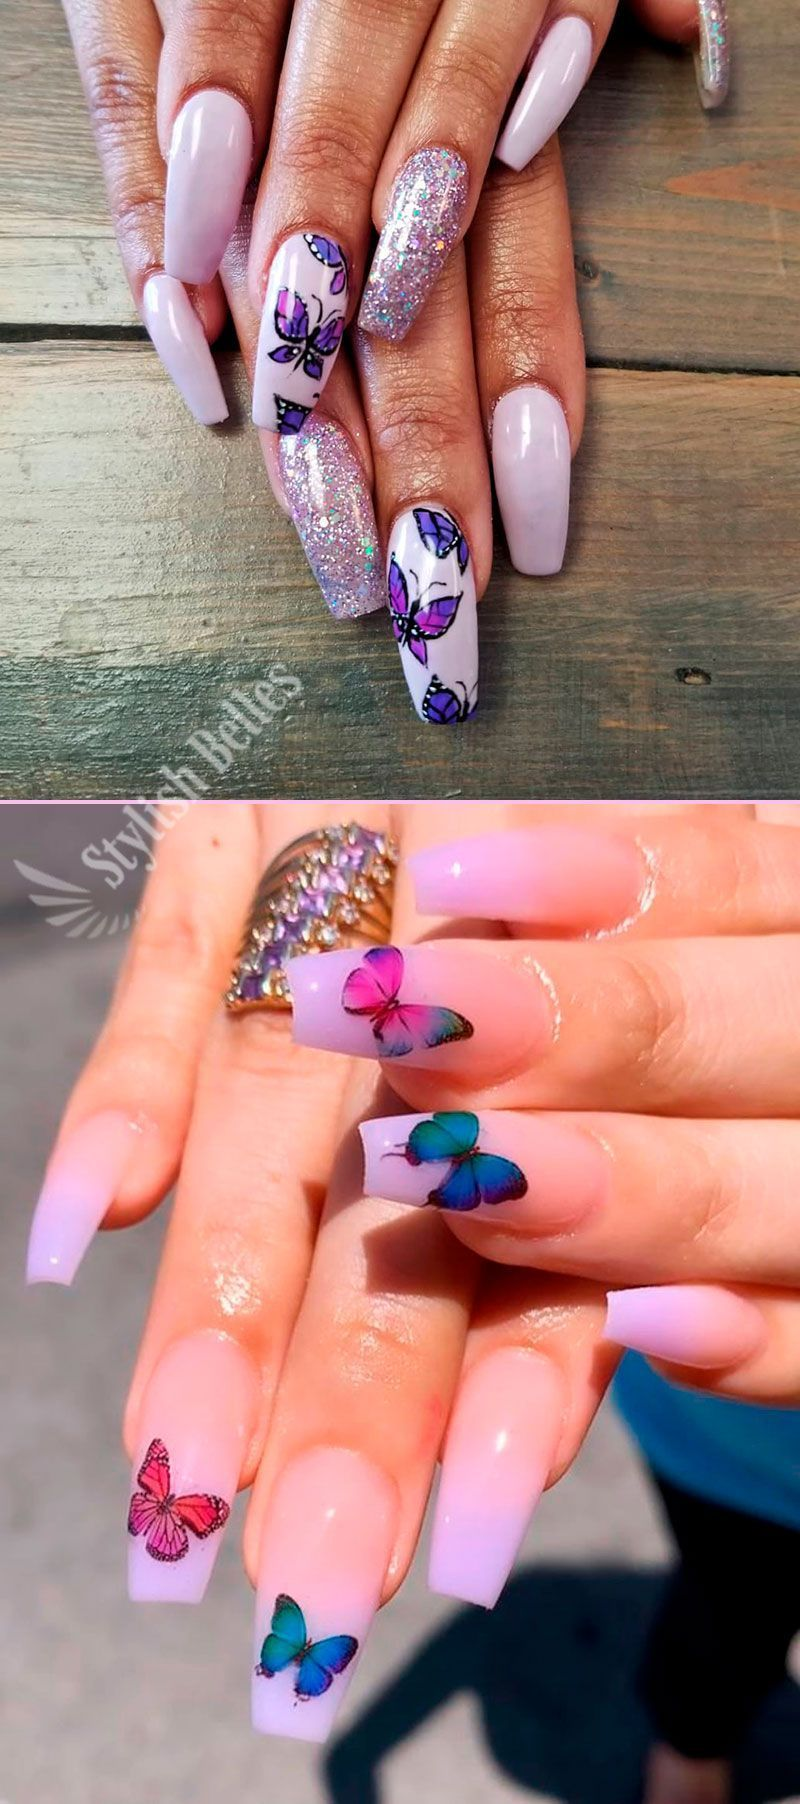 Amazing Butterfly Ideas Nails Purple Spring Springnailart Springnails Amazing Purple Butterfly Sprin Butterfly Nail Designs Spring Nails Butterfly Nail